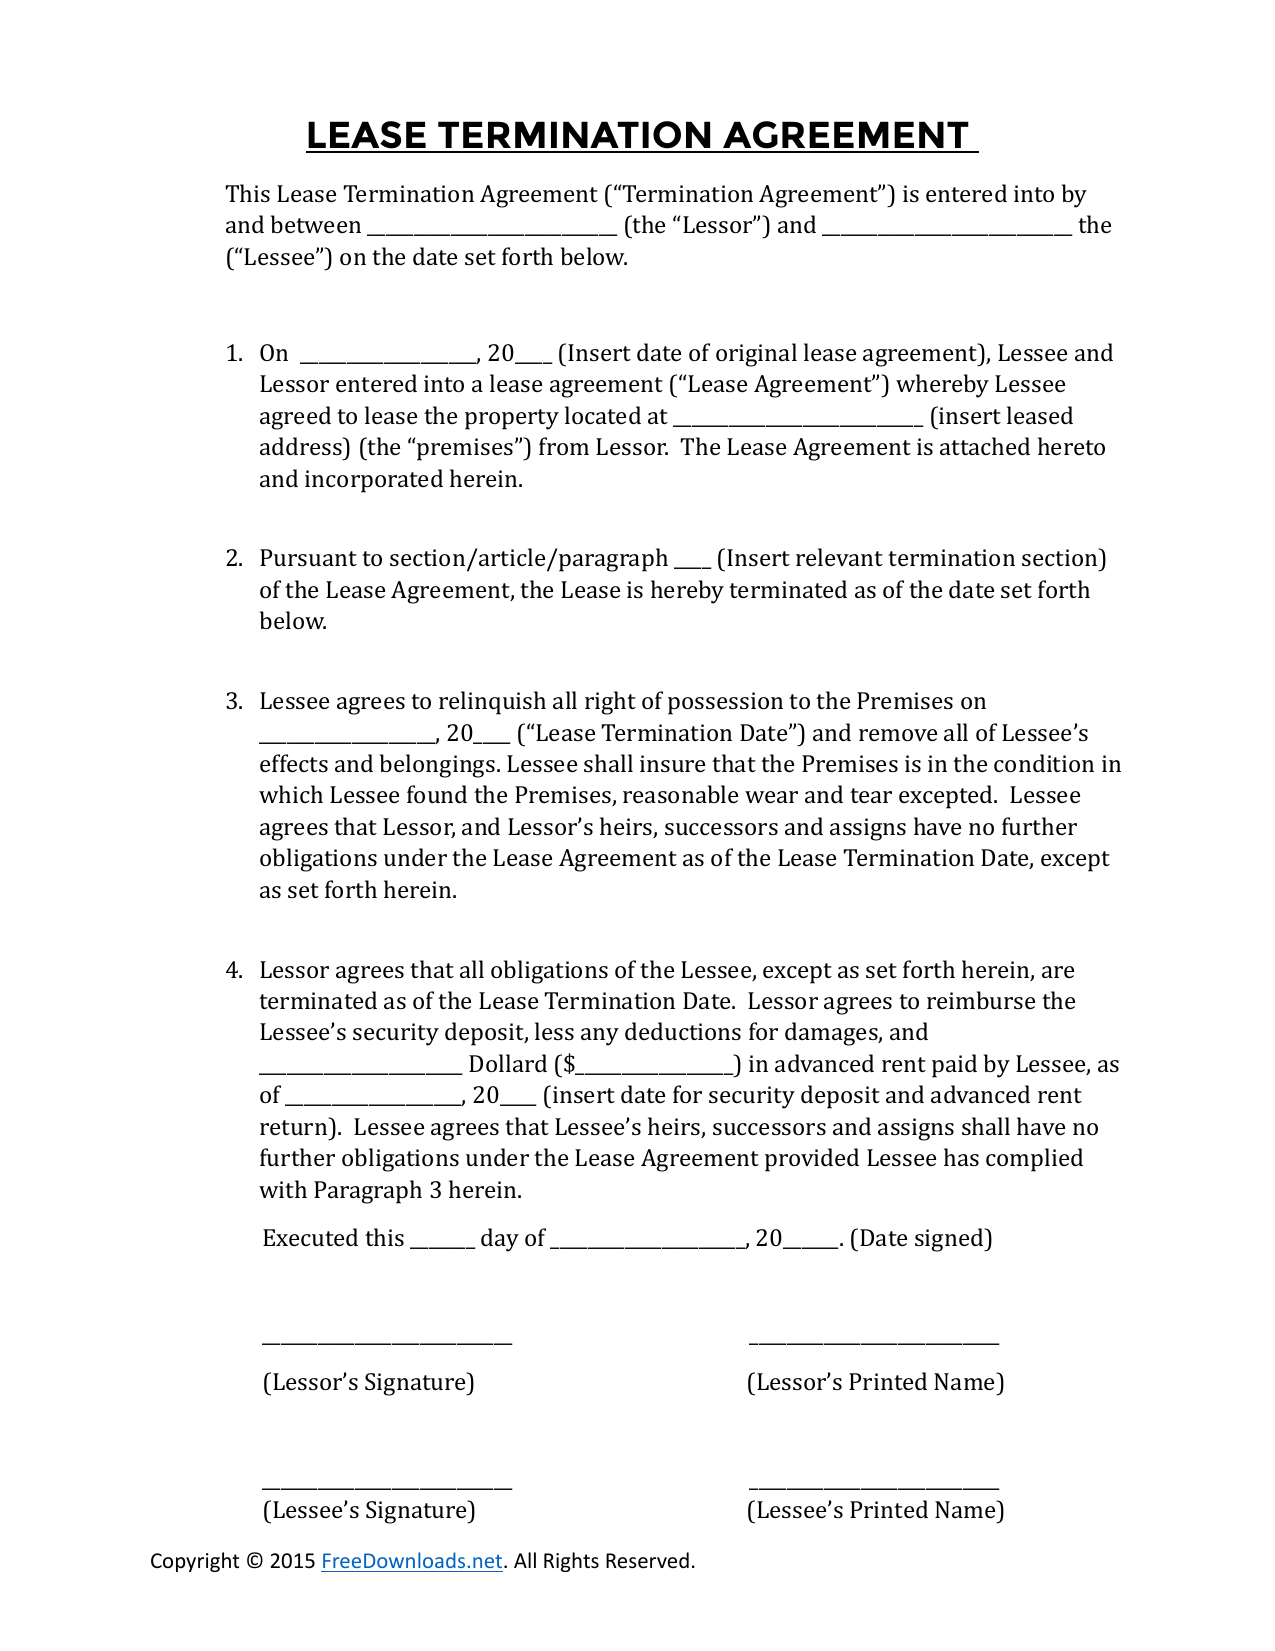 Early Residential Lease Termination Agreement Form